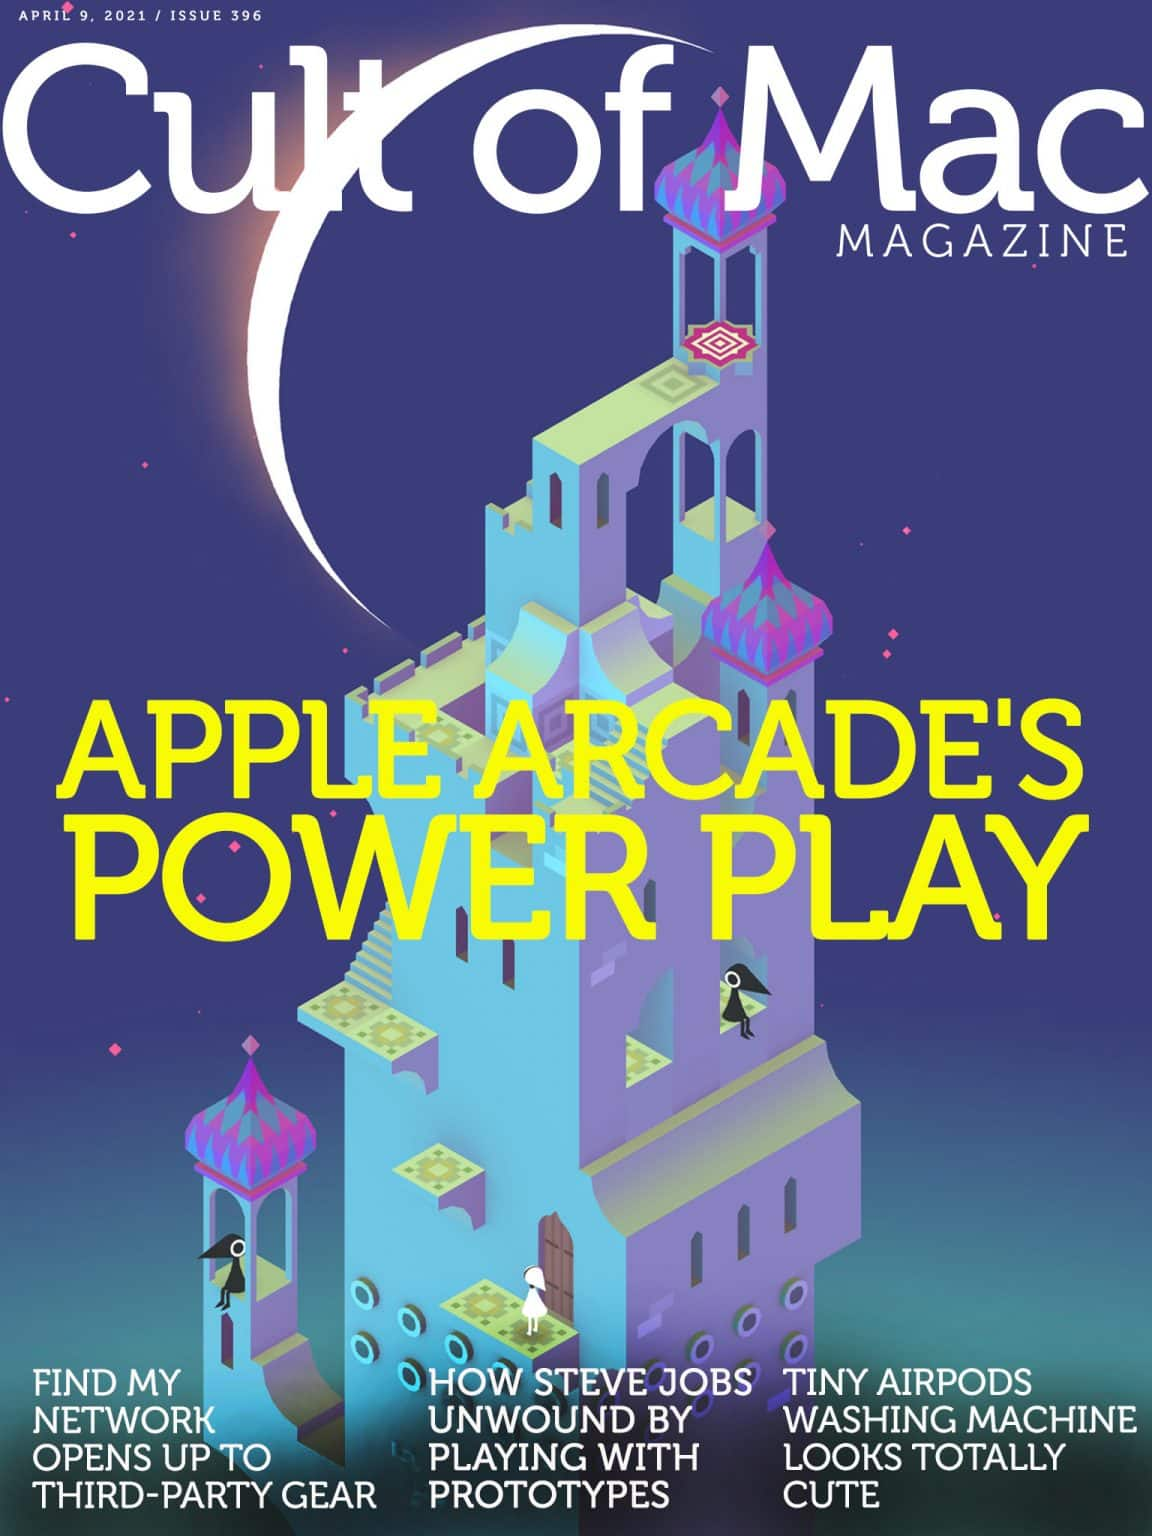 Apple Arcade looks ready to be a major player.